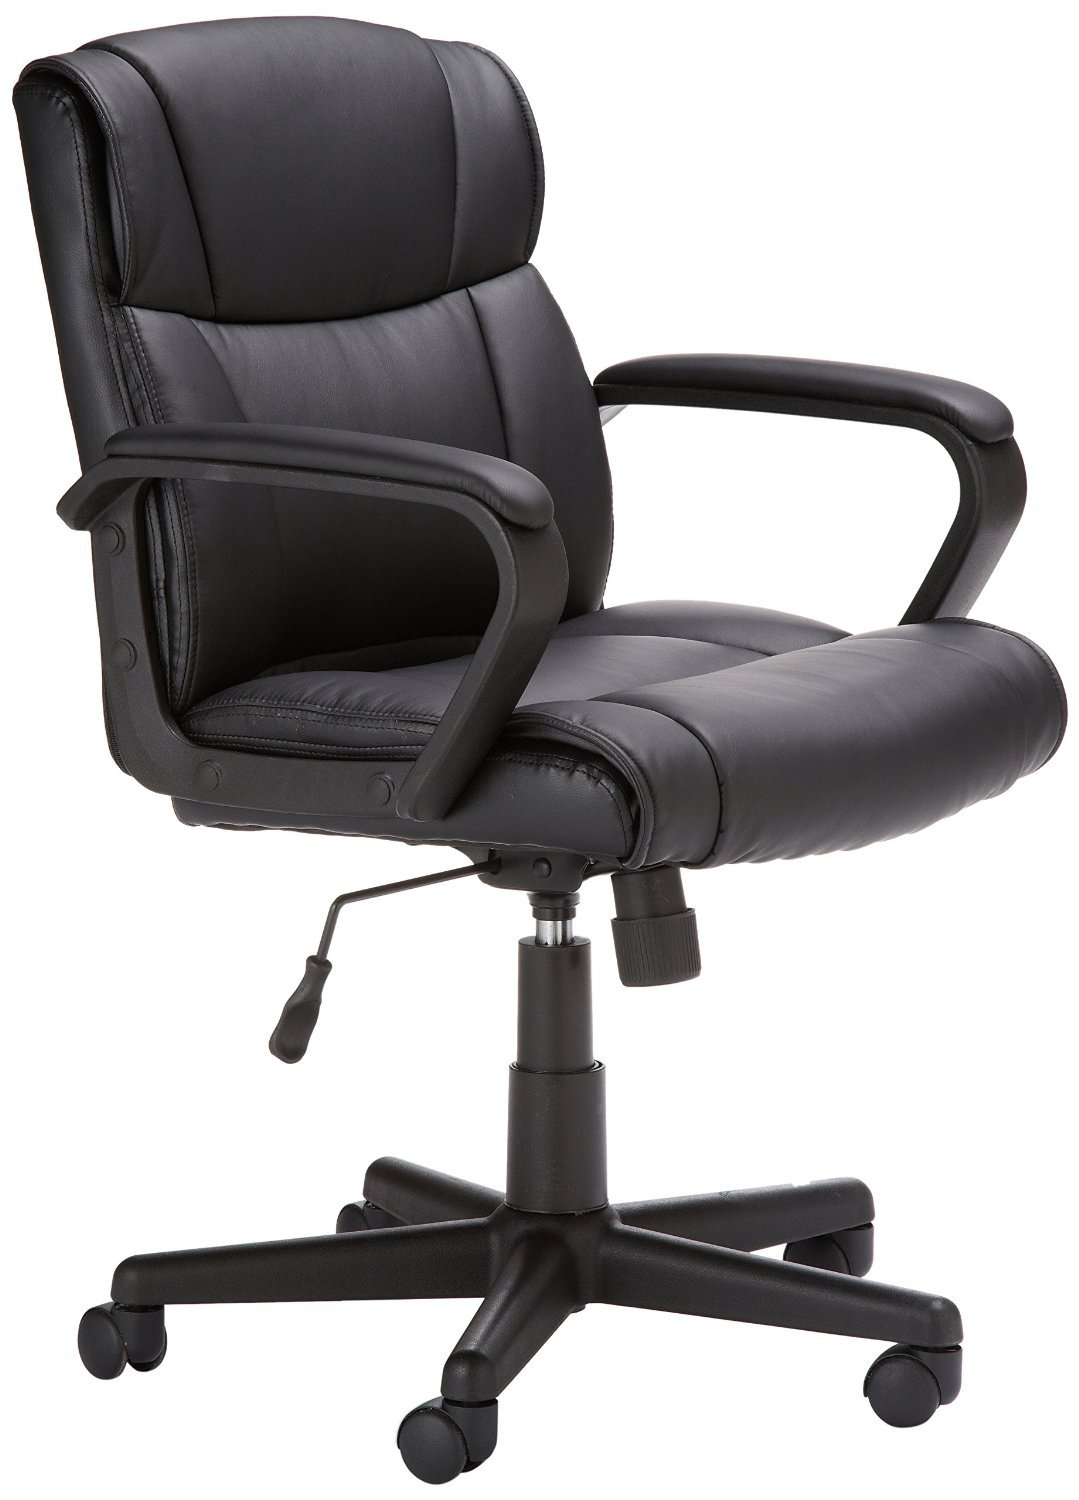 Office Furniture & Lighting | Amazon.com | Office